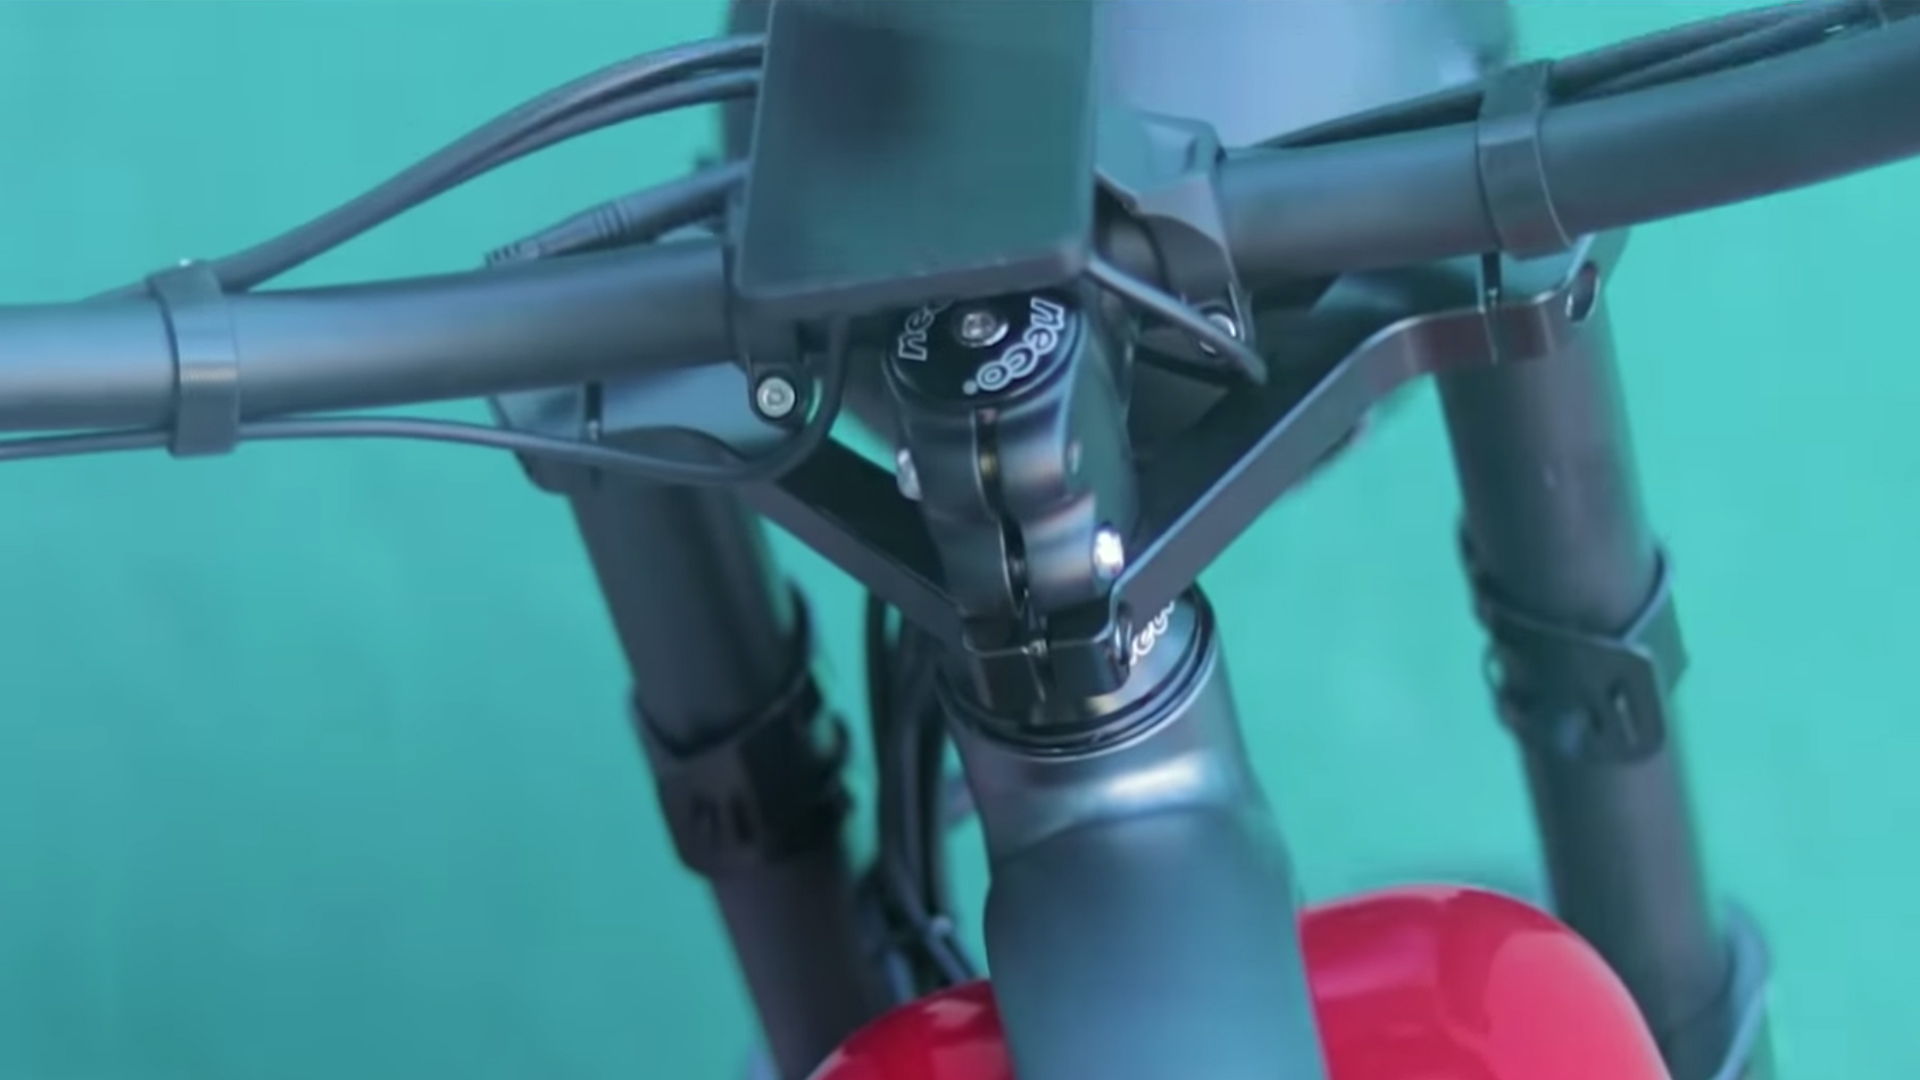 electrified-reviews-civi-bikes-cheetah-electric-bike-review-handlebars.jpg